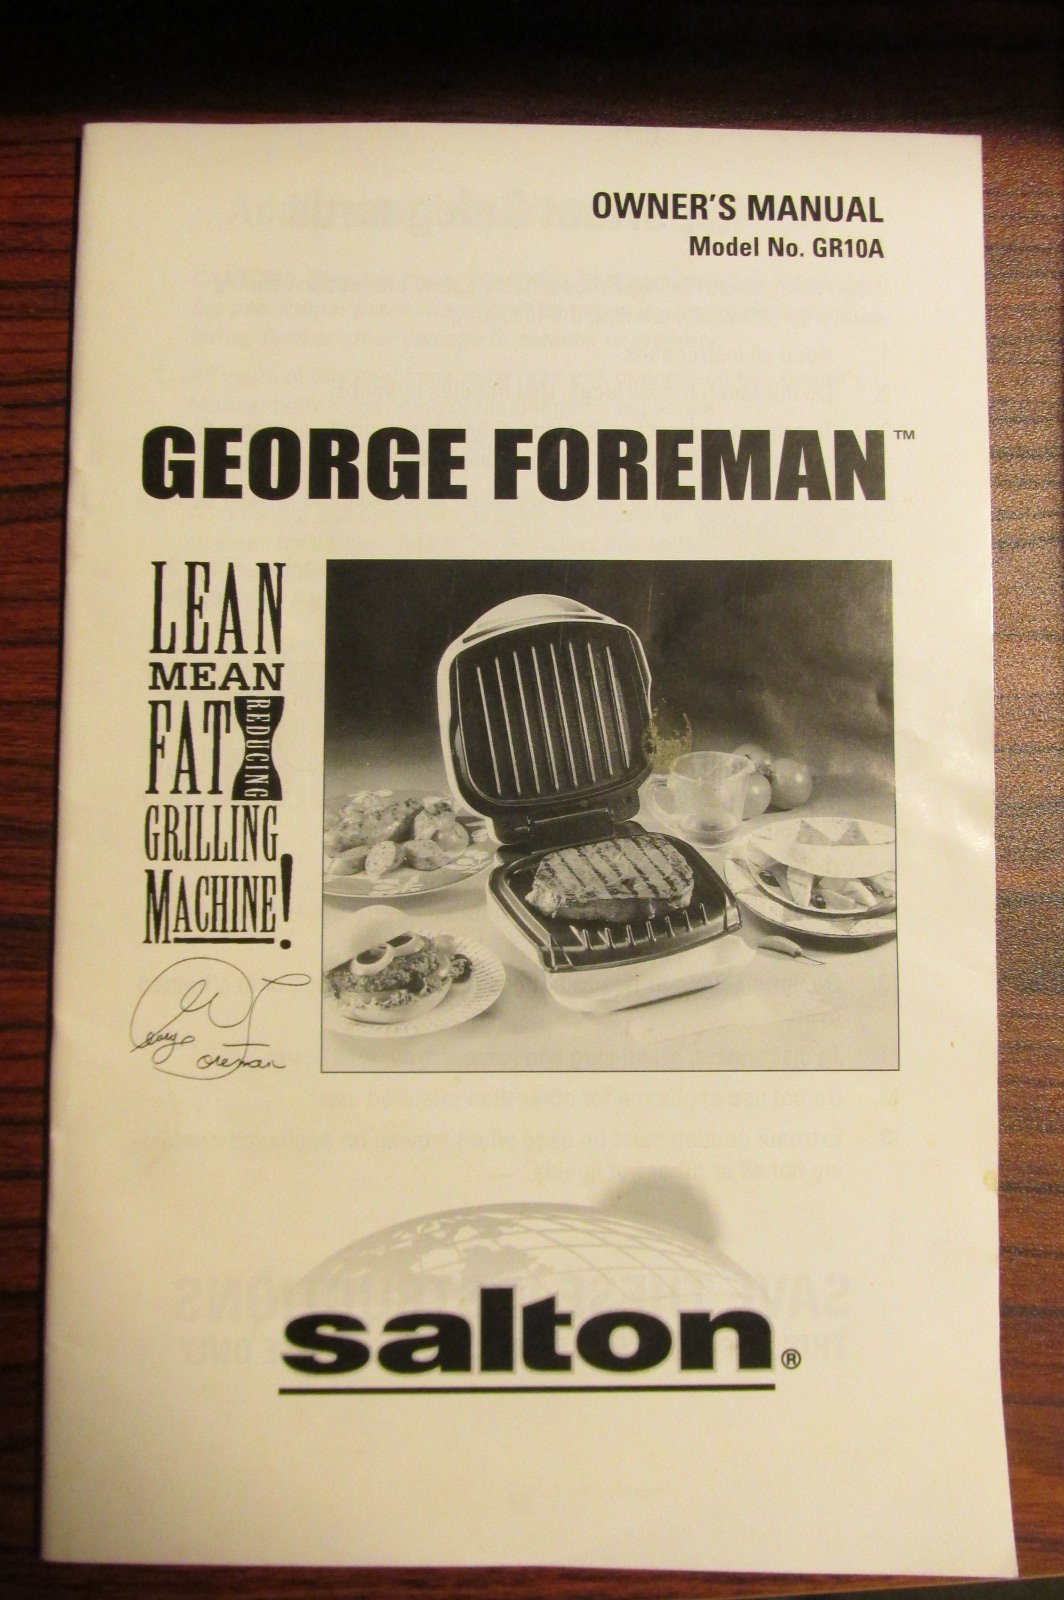 George Foreman's Lean Mean Fat Grilling Machine! Owner's Manual Model No.  GR10A: Amazon.com: Books